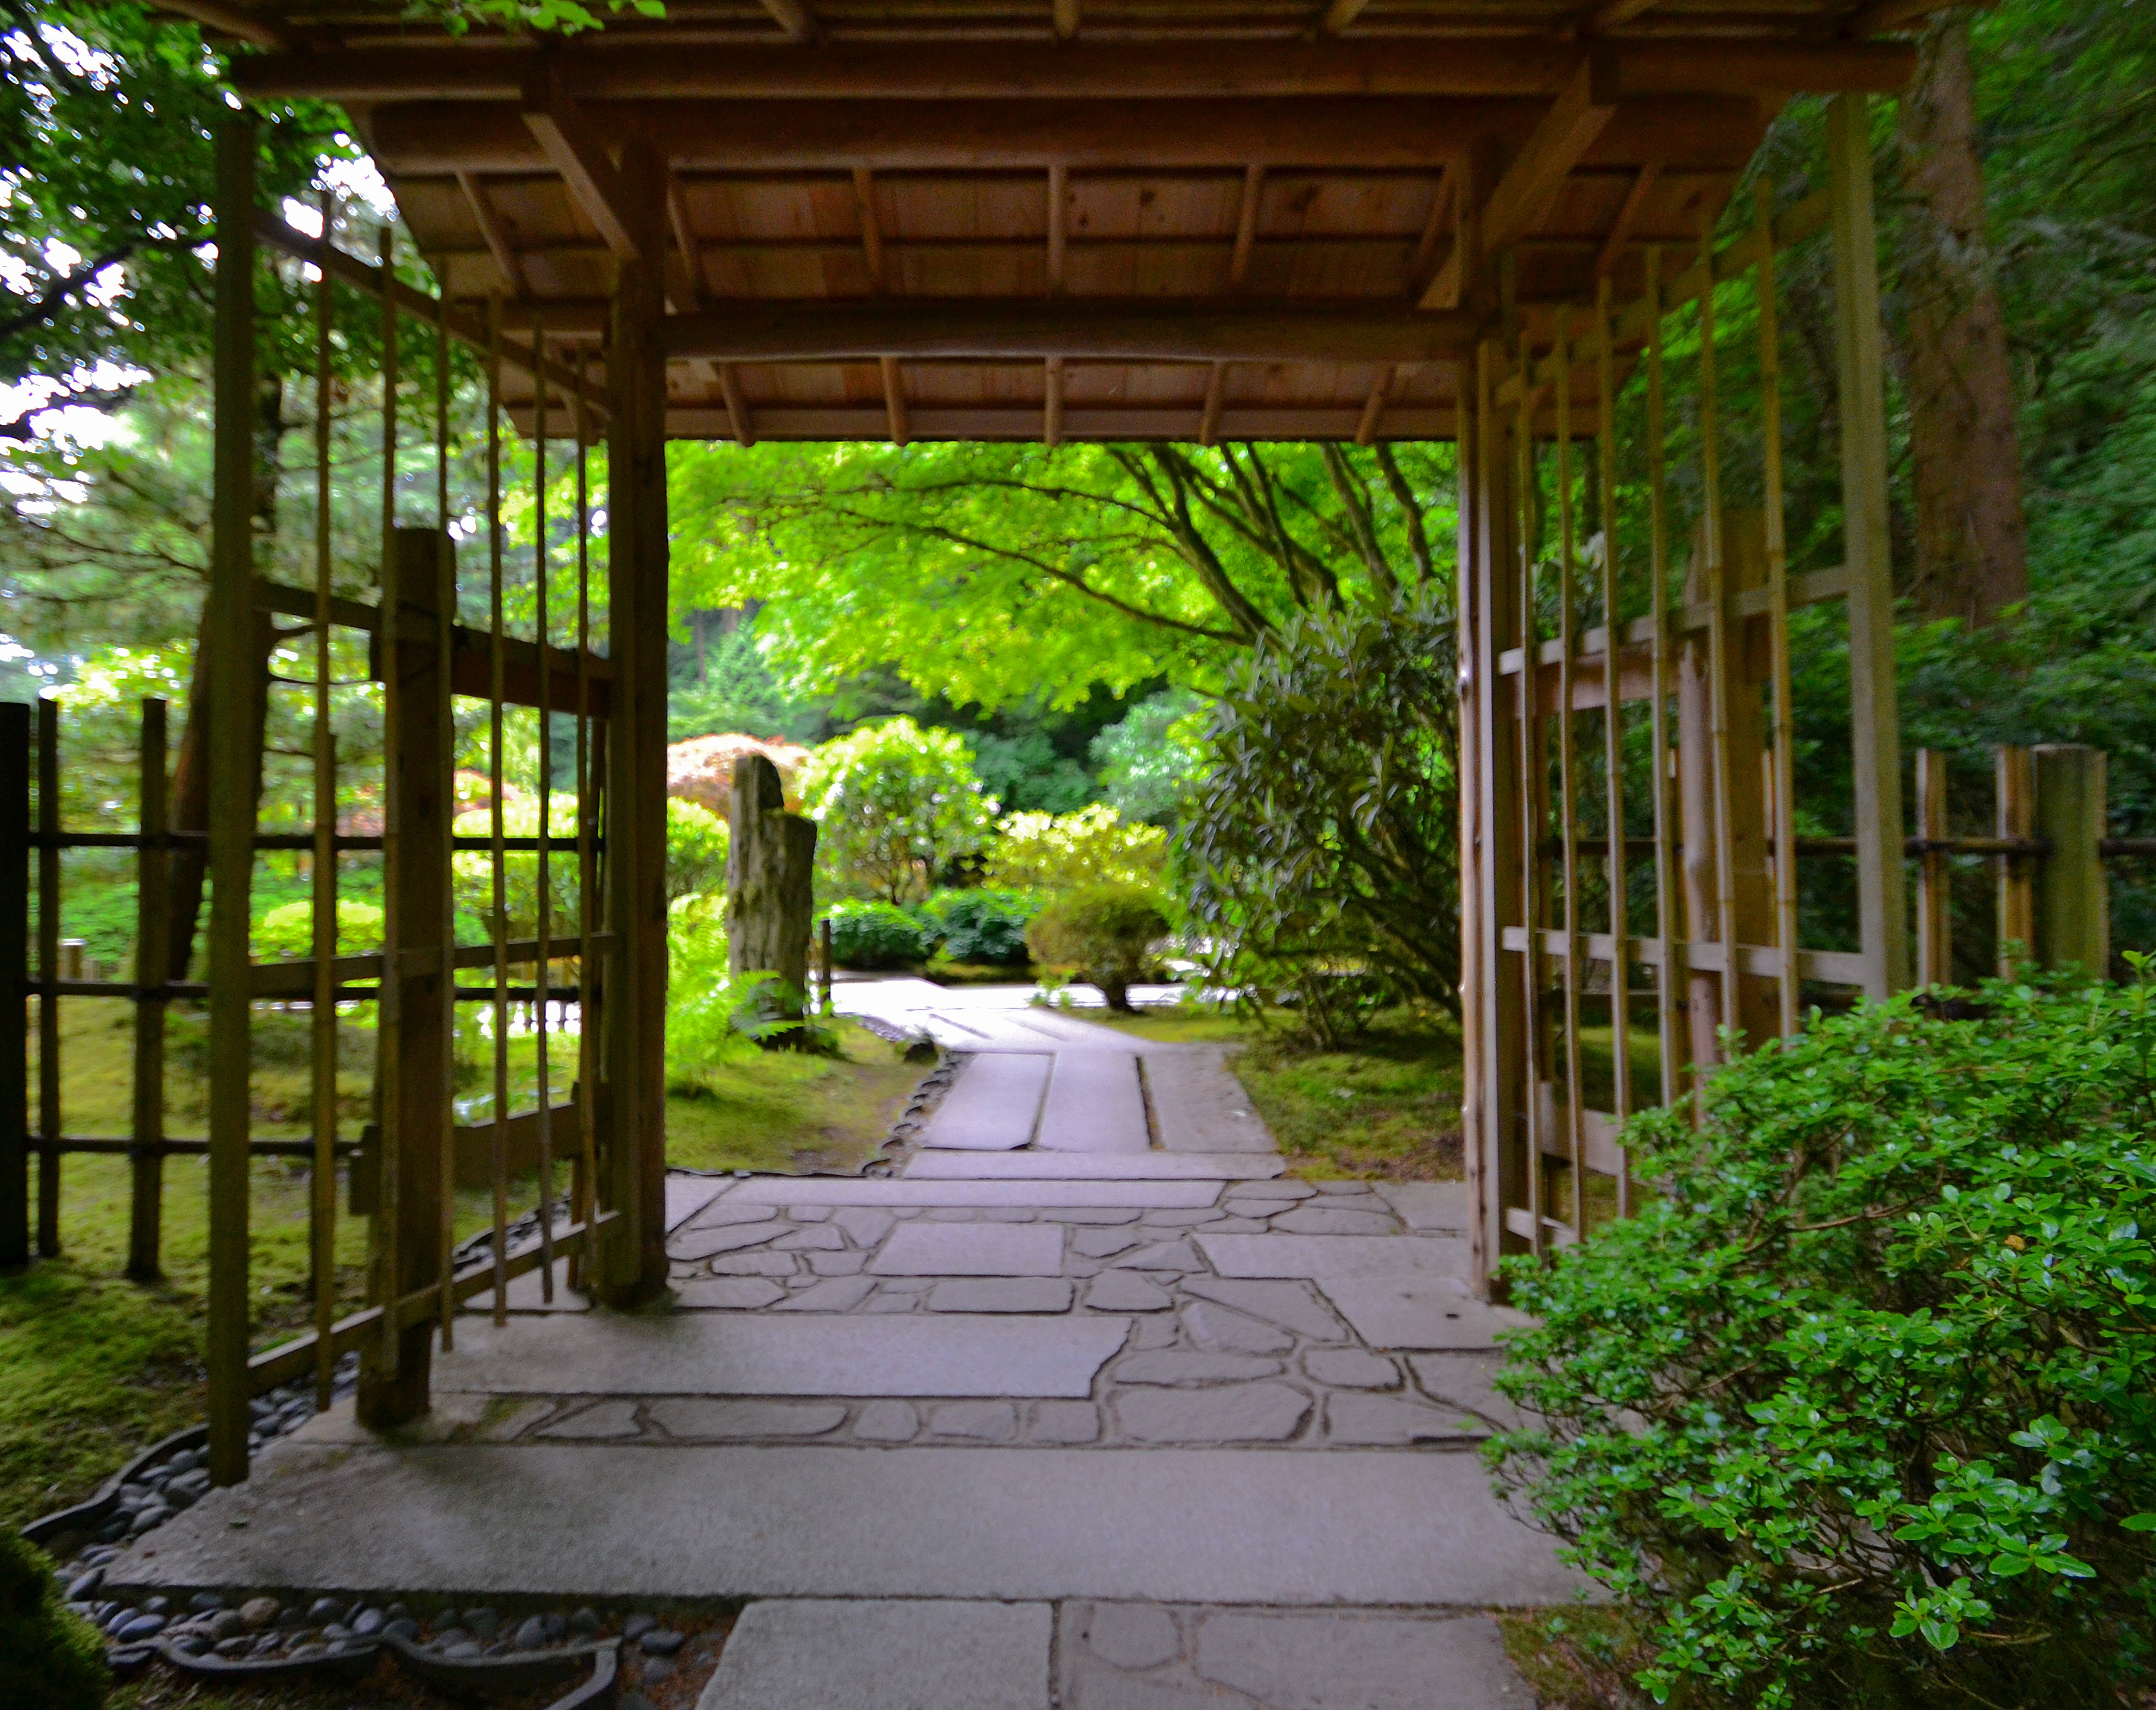 japanese garden essay Unlike most editing & proofreading services, we edit for everything: grammar, spelling, punctuation, idea flow, sentence structure, & more get started now.